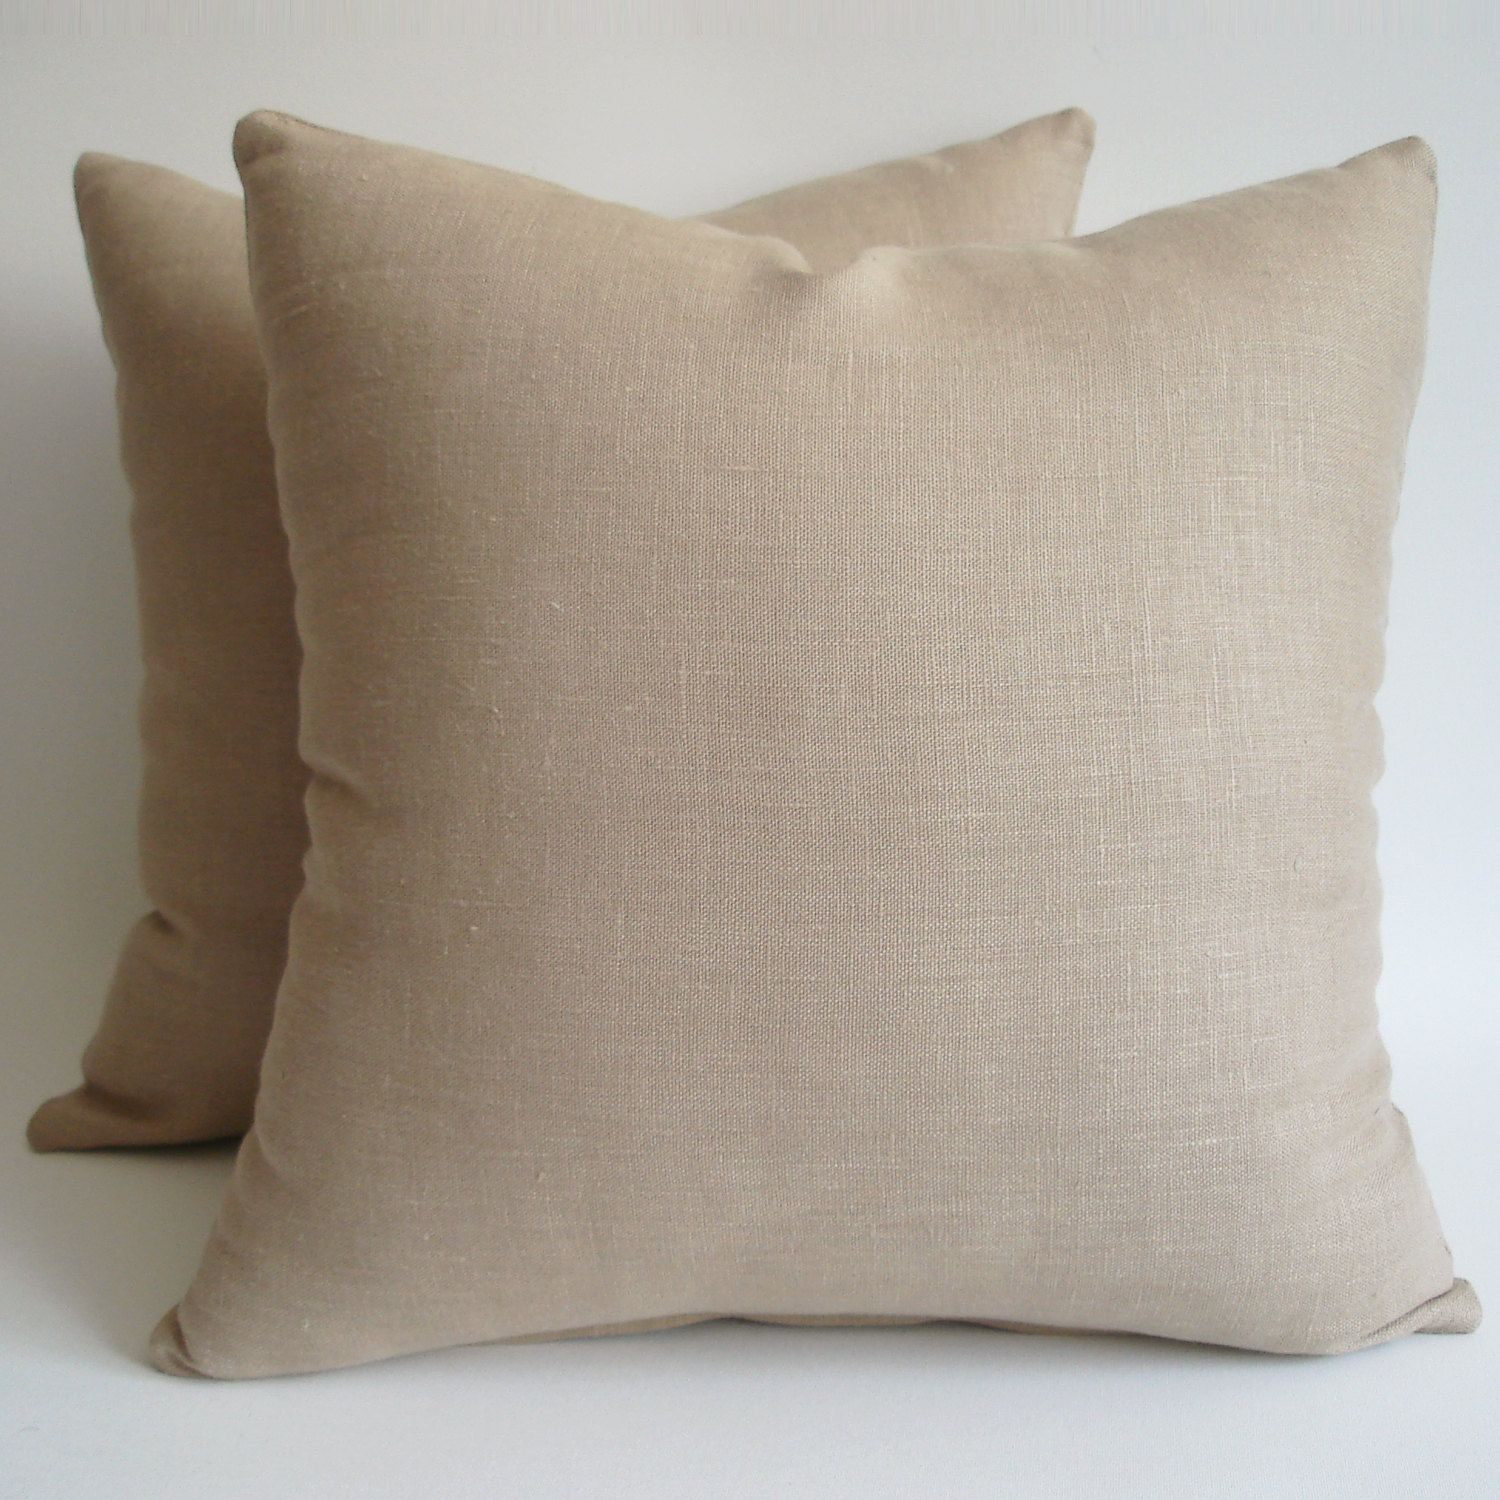 gold dots cover pillows decorative pin with covers gray linen print shams pillow throw